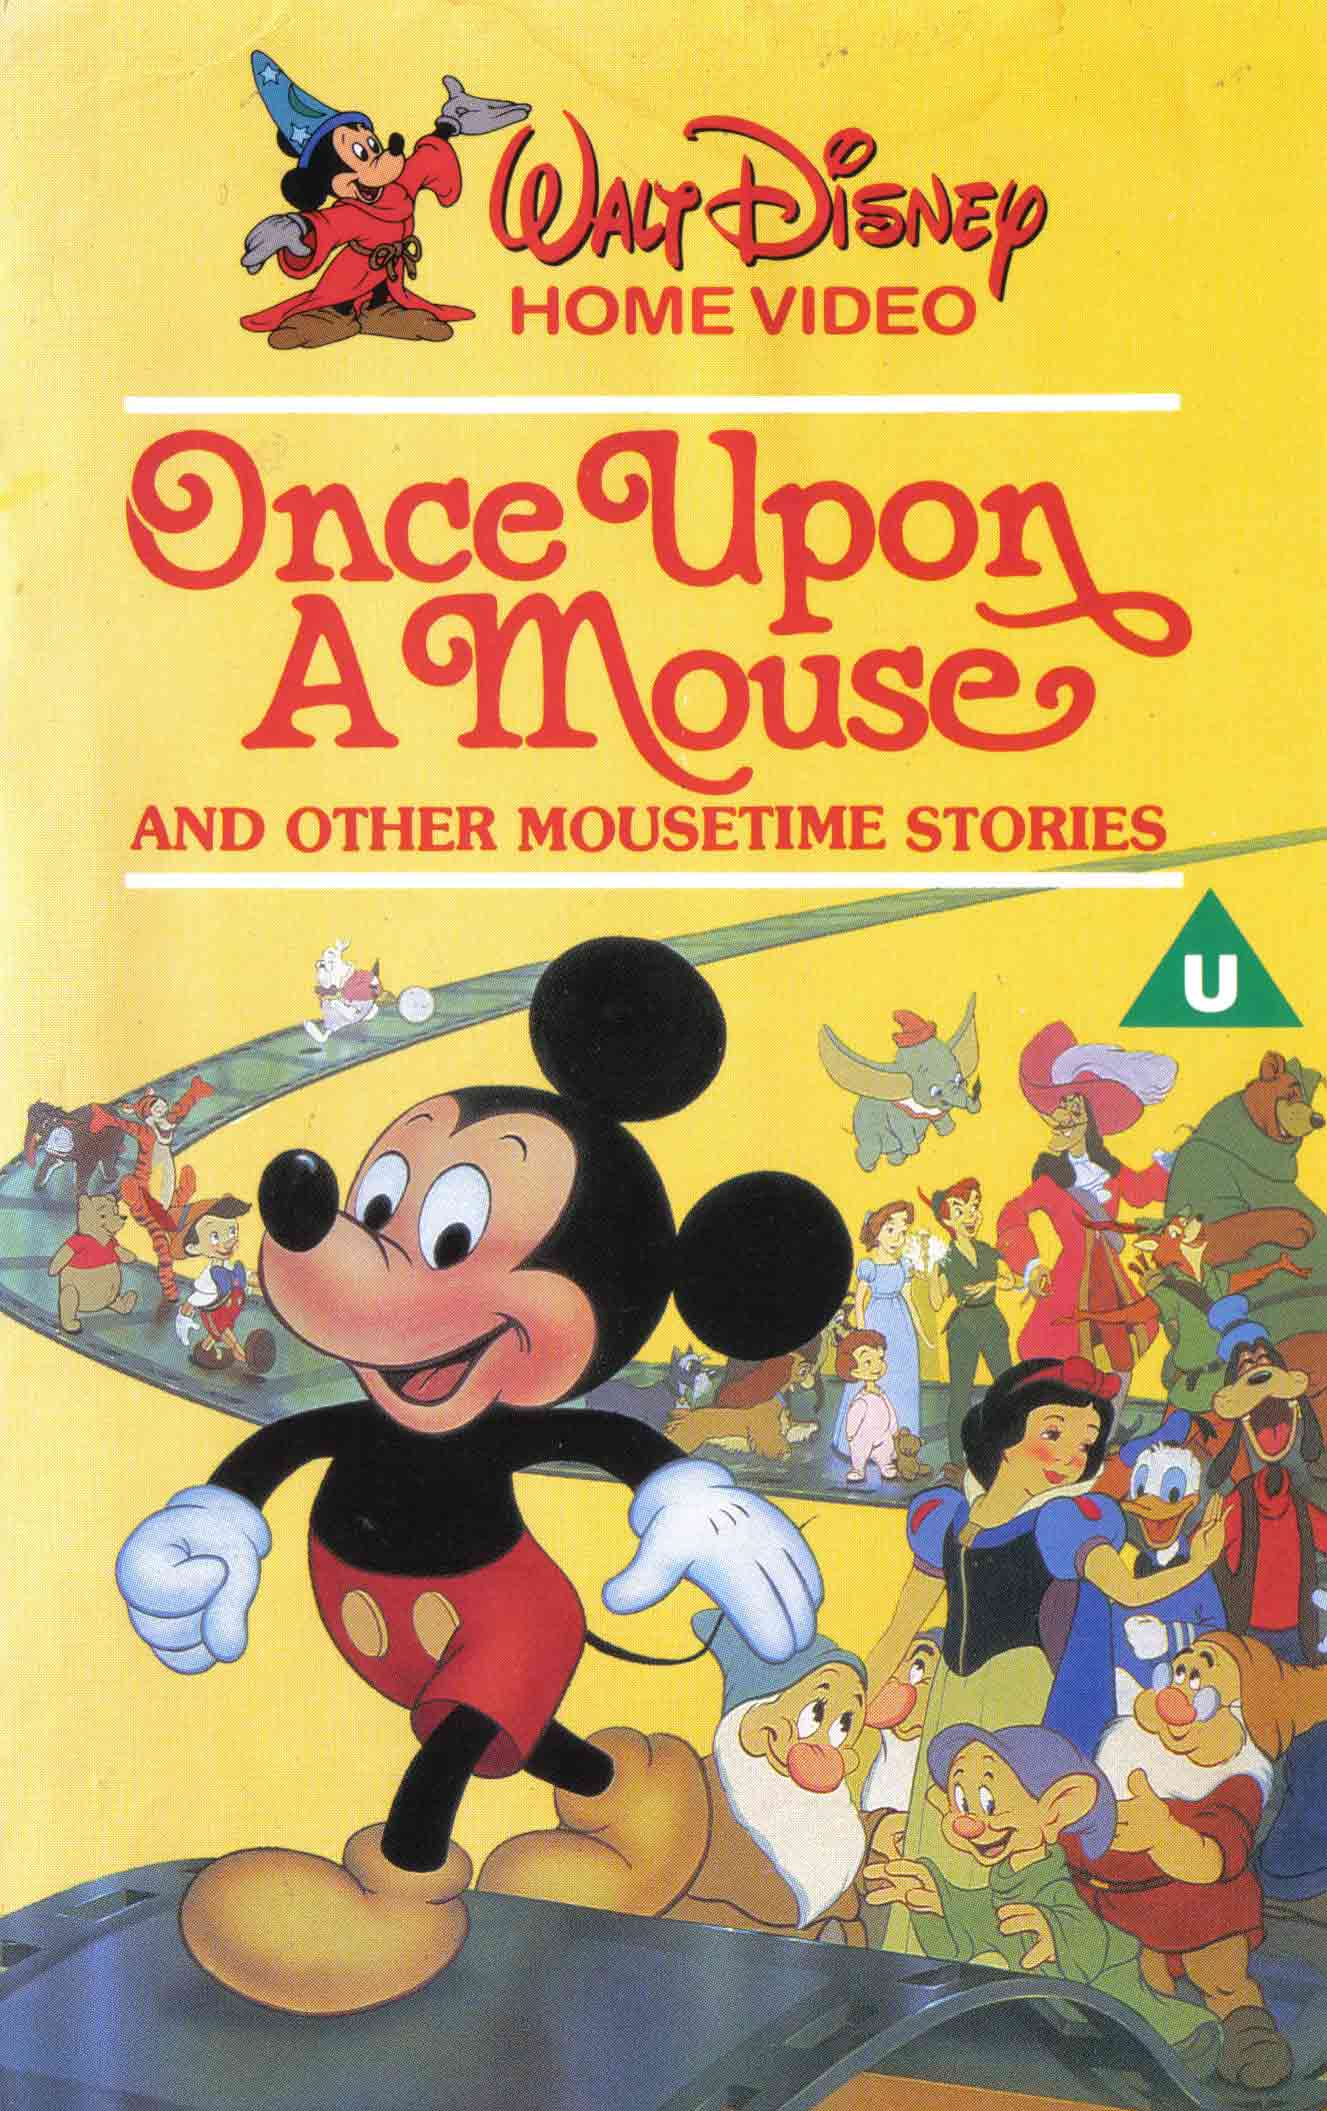 affiche poser once upon mouse disney